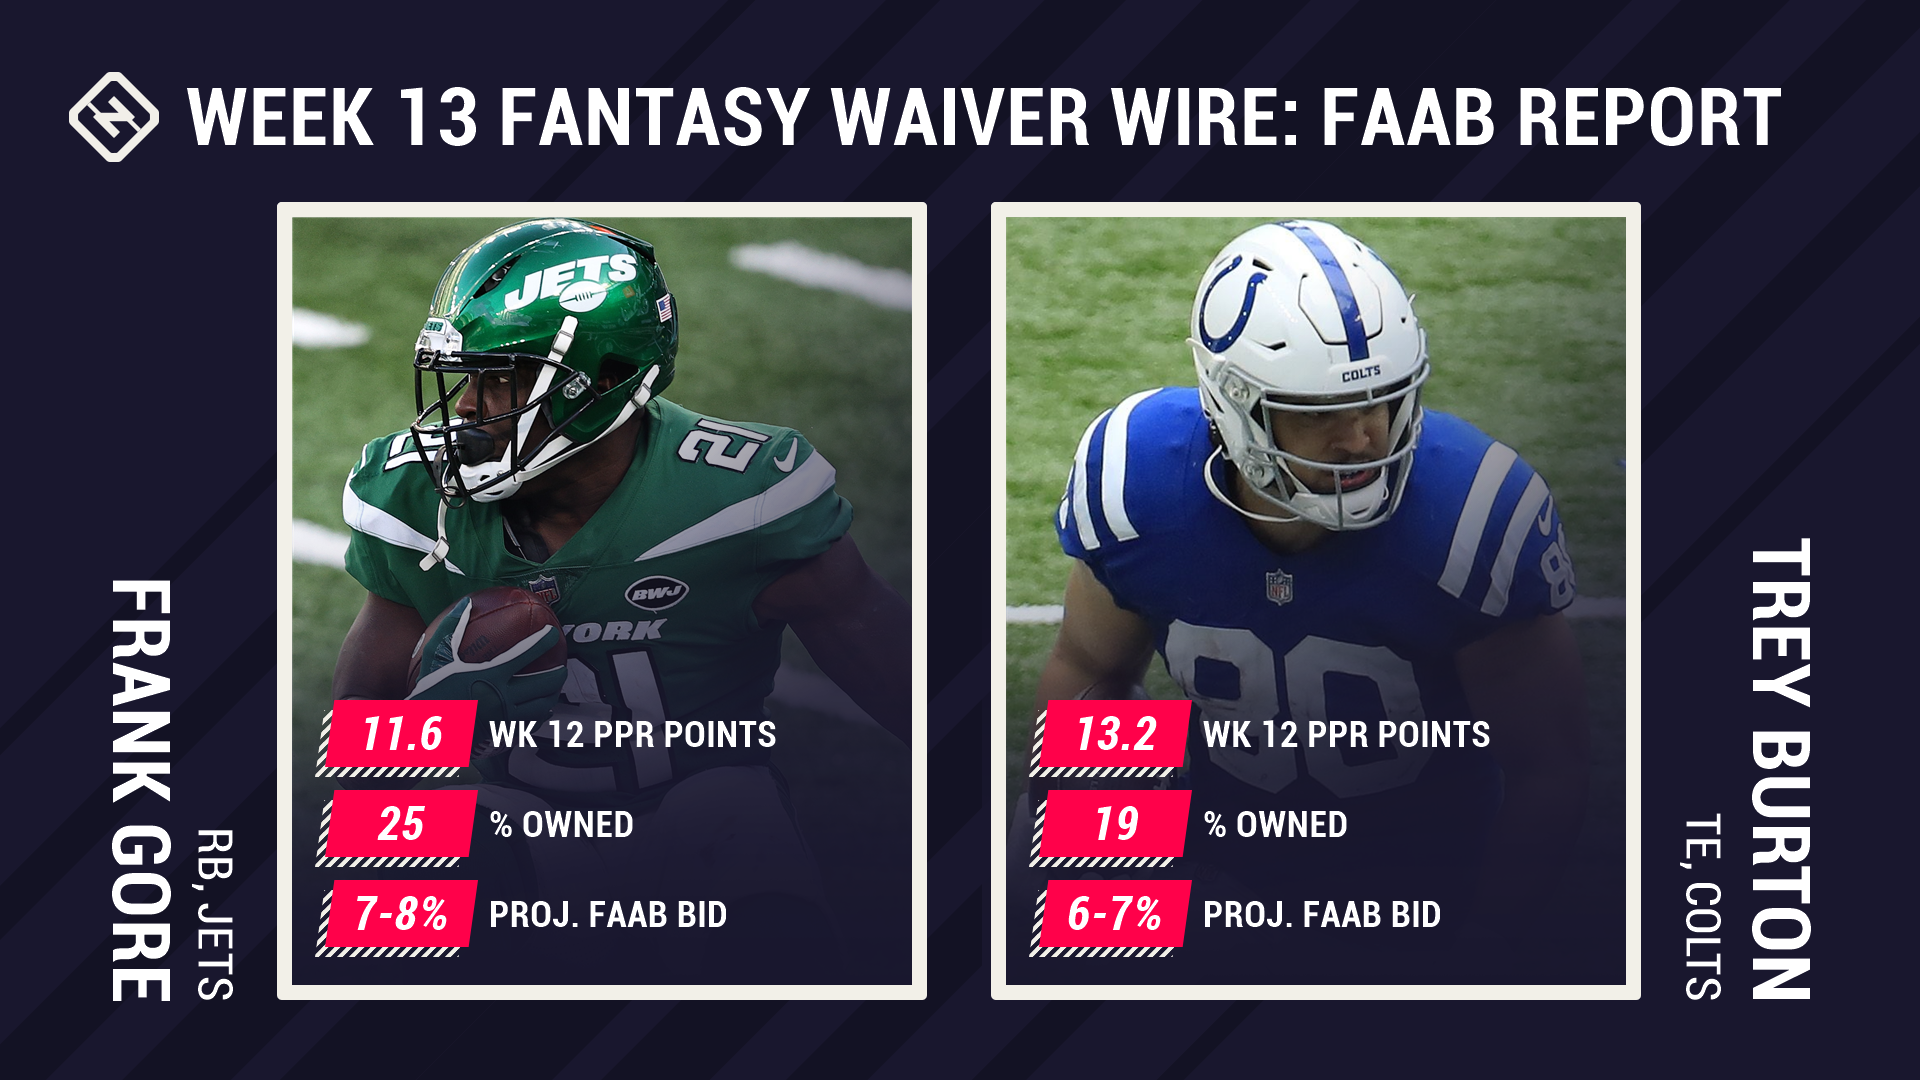 Fantasy Waiver Wire: FAAB Report for Week 13 pickups, free agents